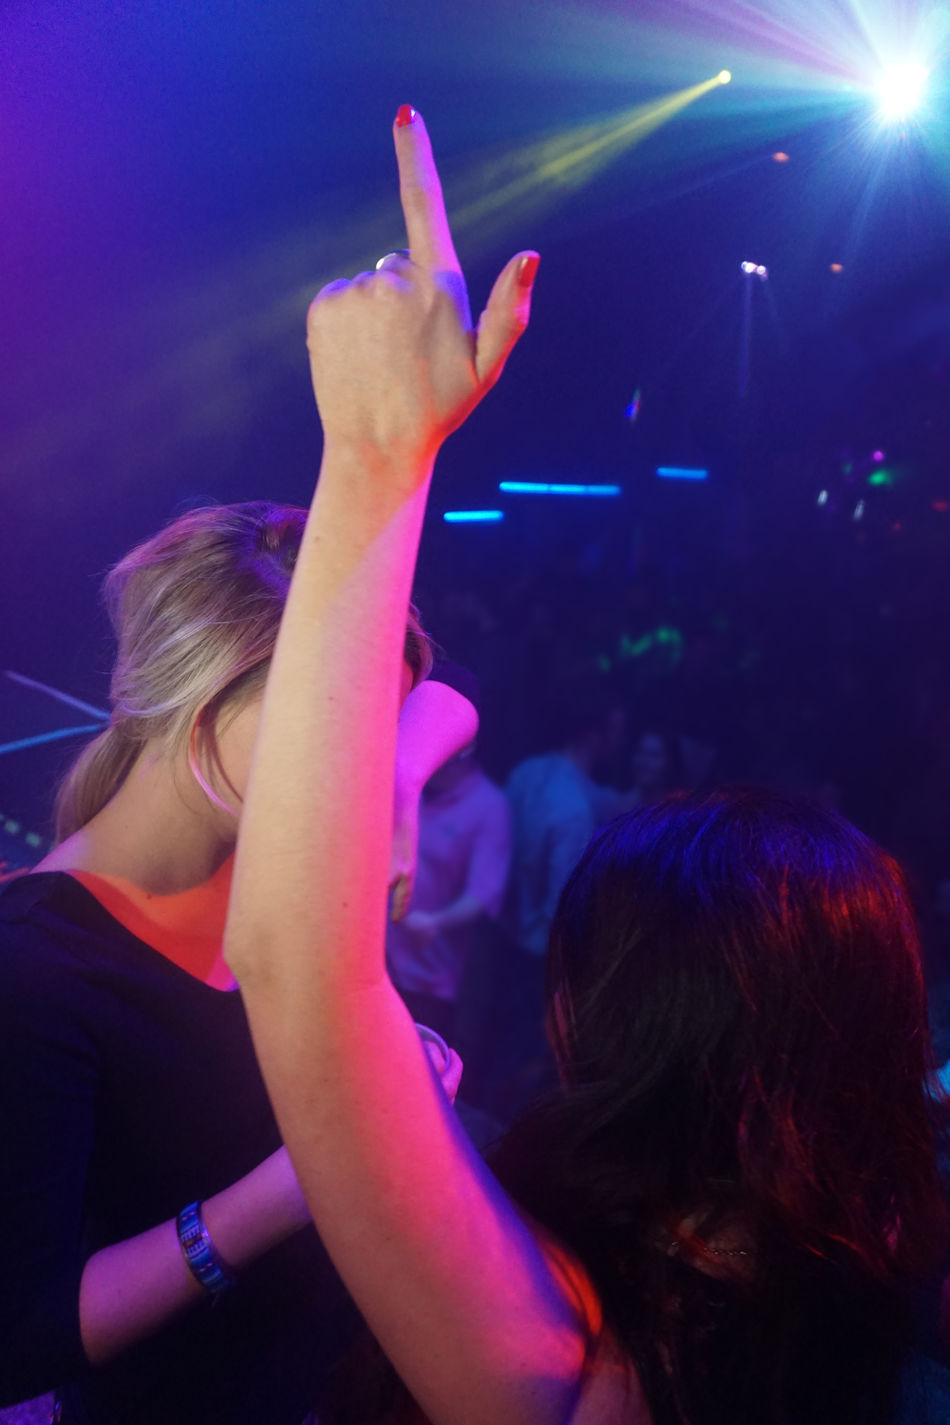 Arts Culture And Entertainment Club Dance Dancing Drink Drinking Enjoyment Illuminated Indoors  Leisure Activity Lifestyles Music Night Nightclub Parties Party Party Girls Performance Person Playing Relaxation Sitting